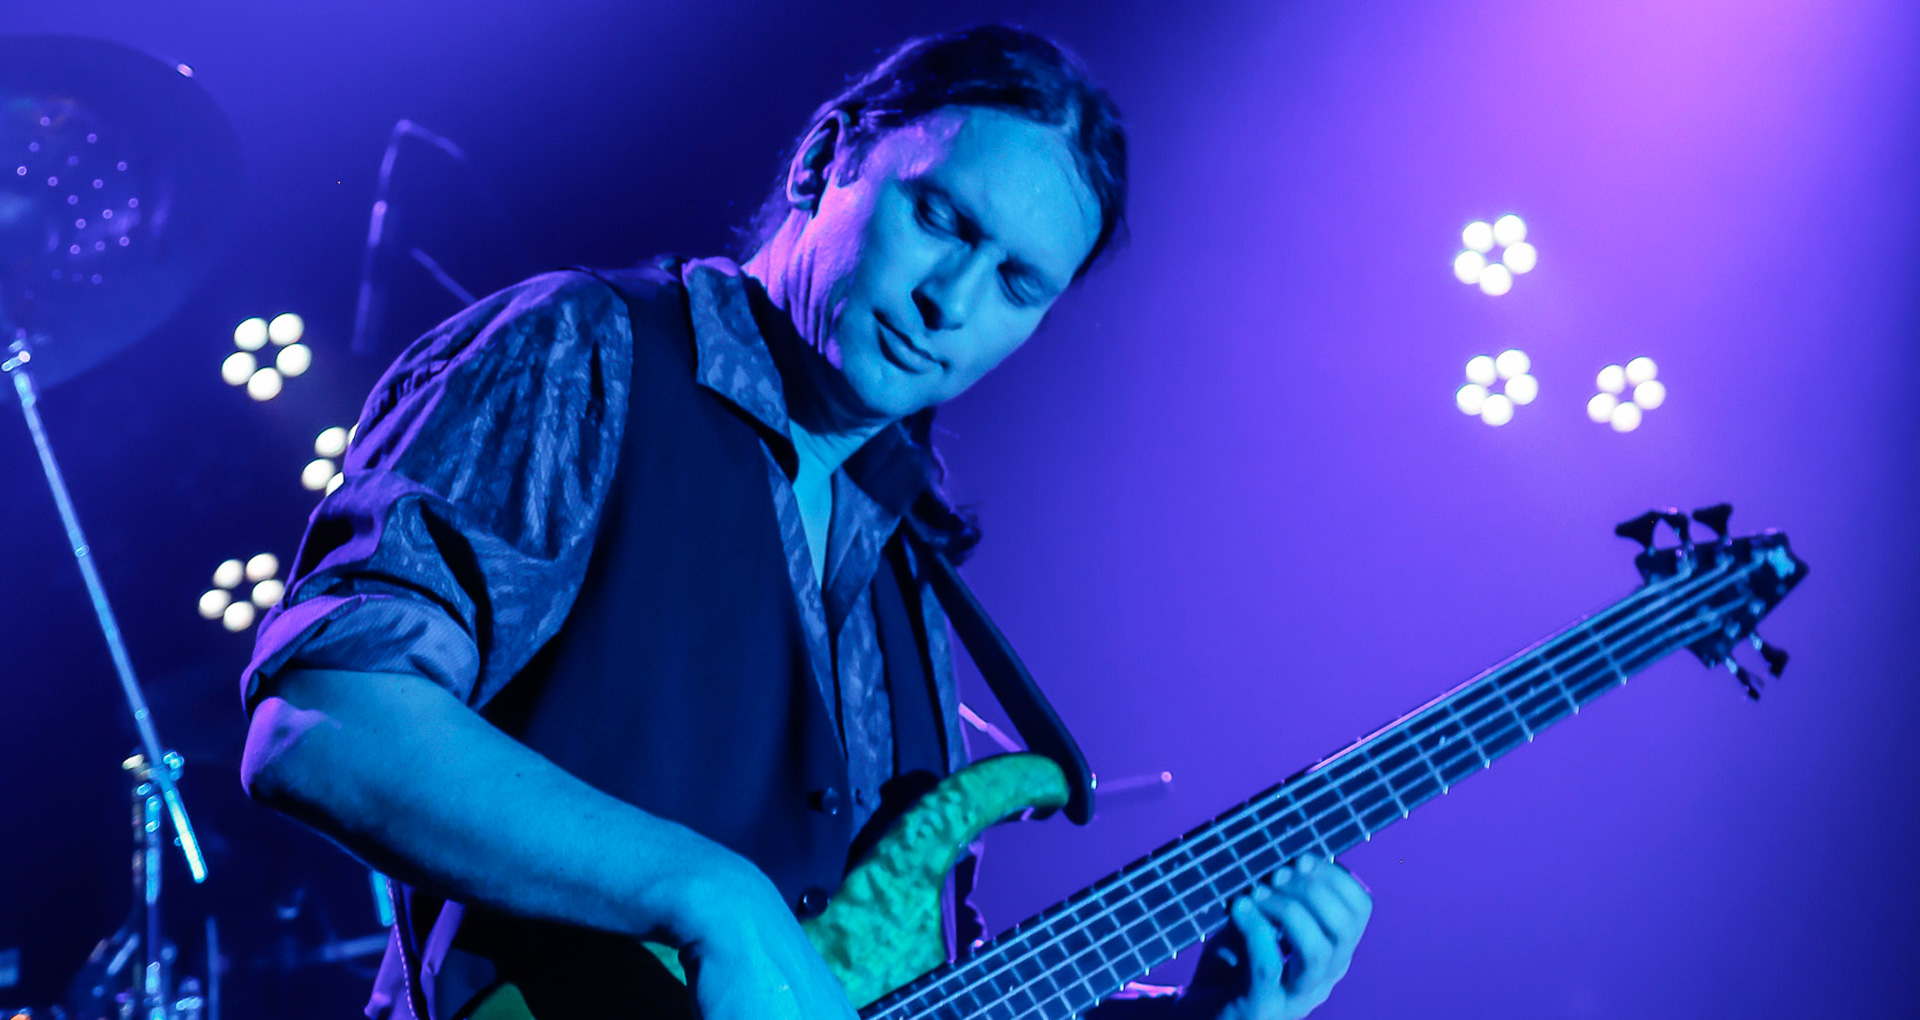 Steffen Knauss hired gun bassplayer recording bass